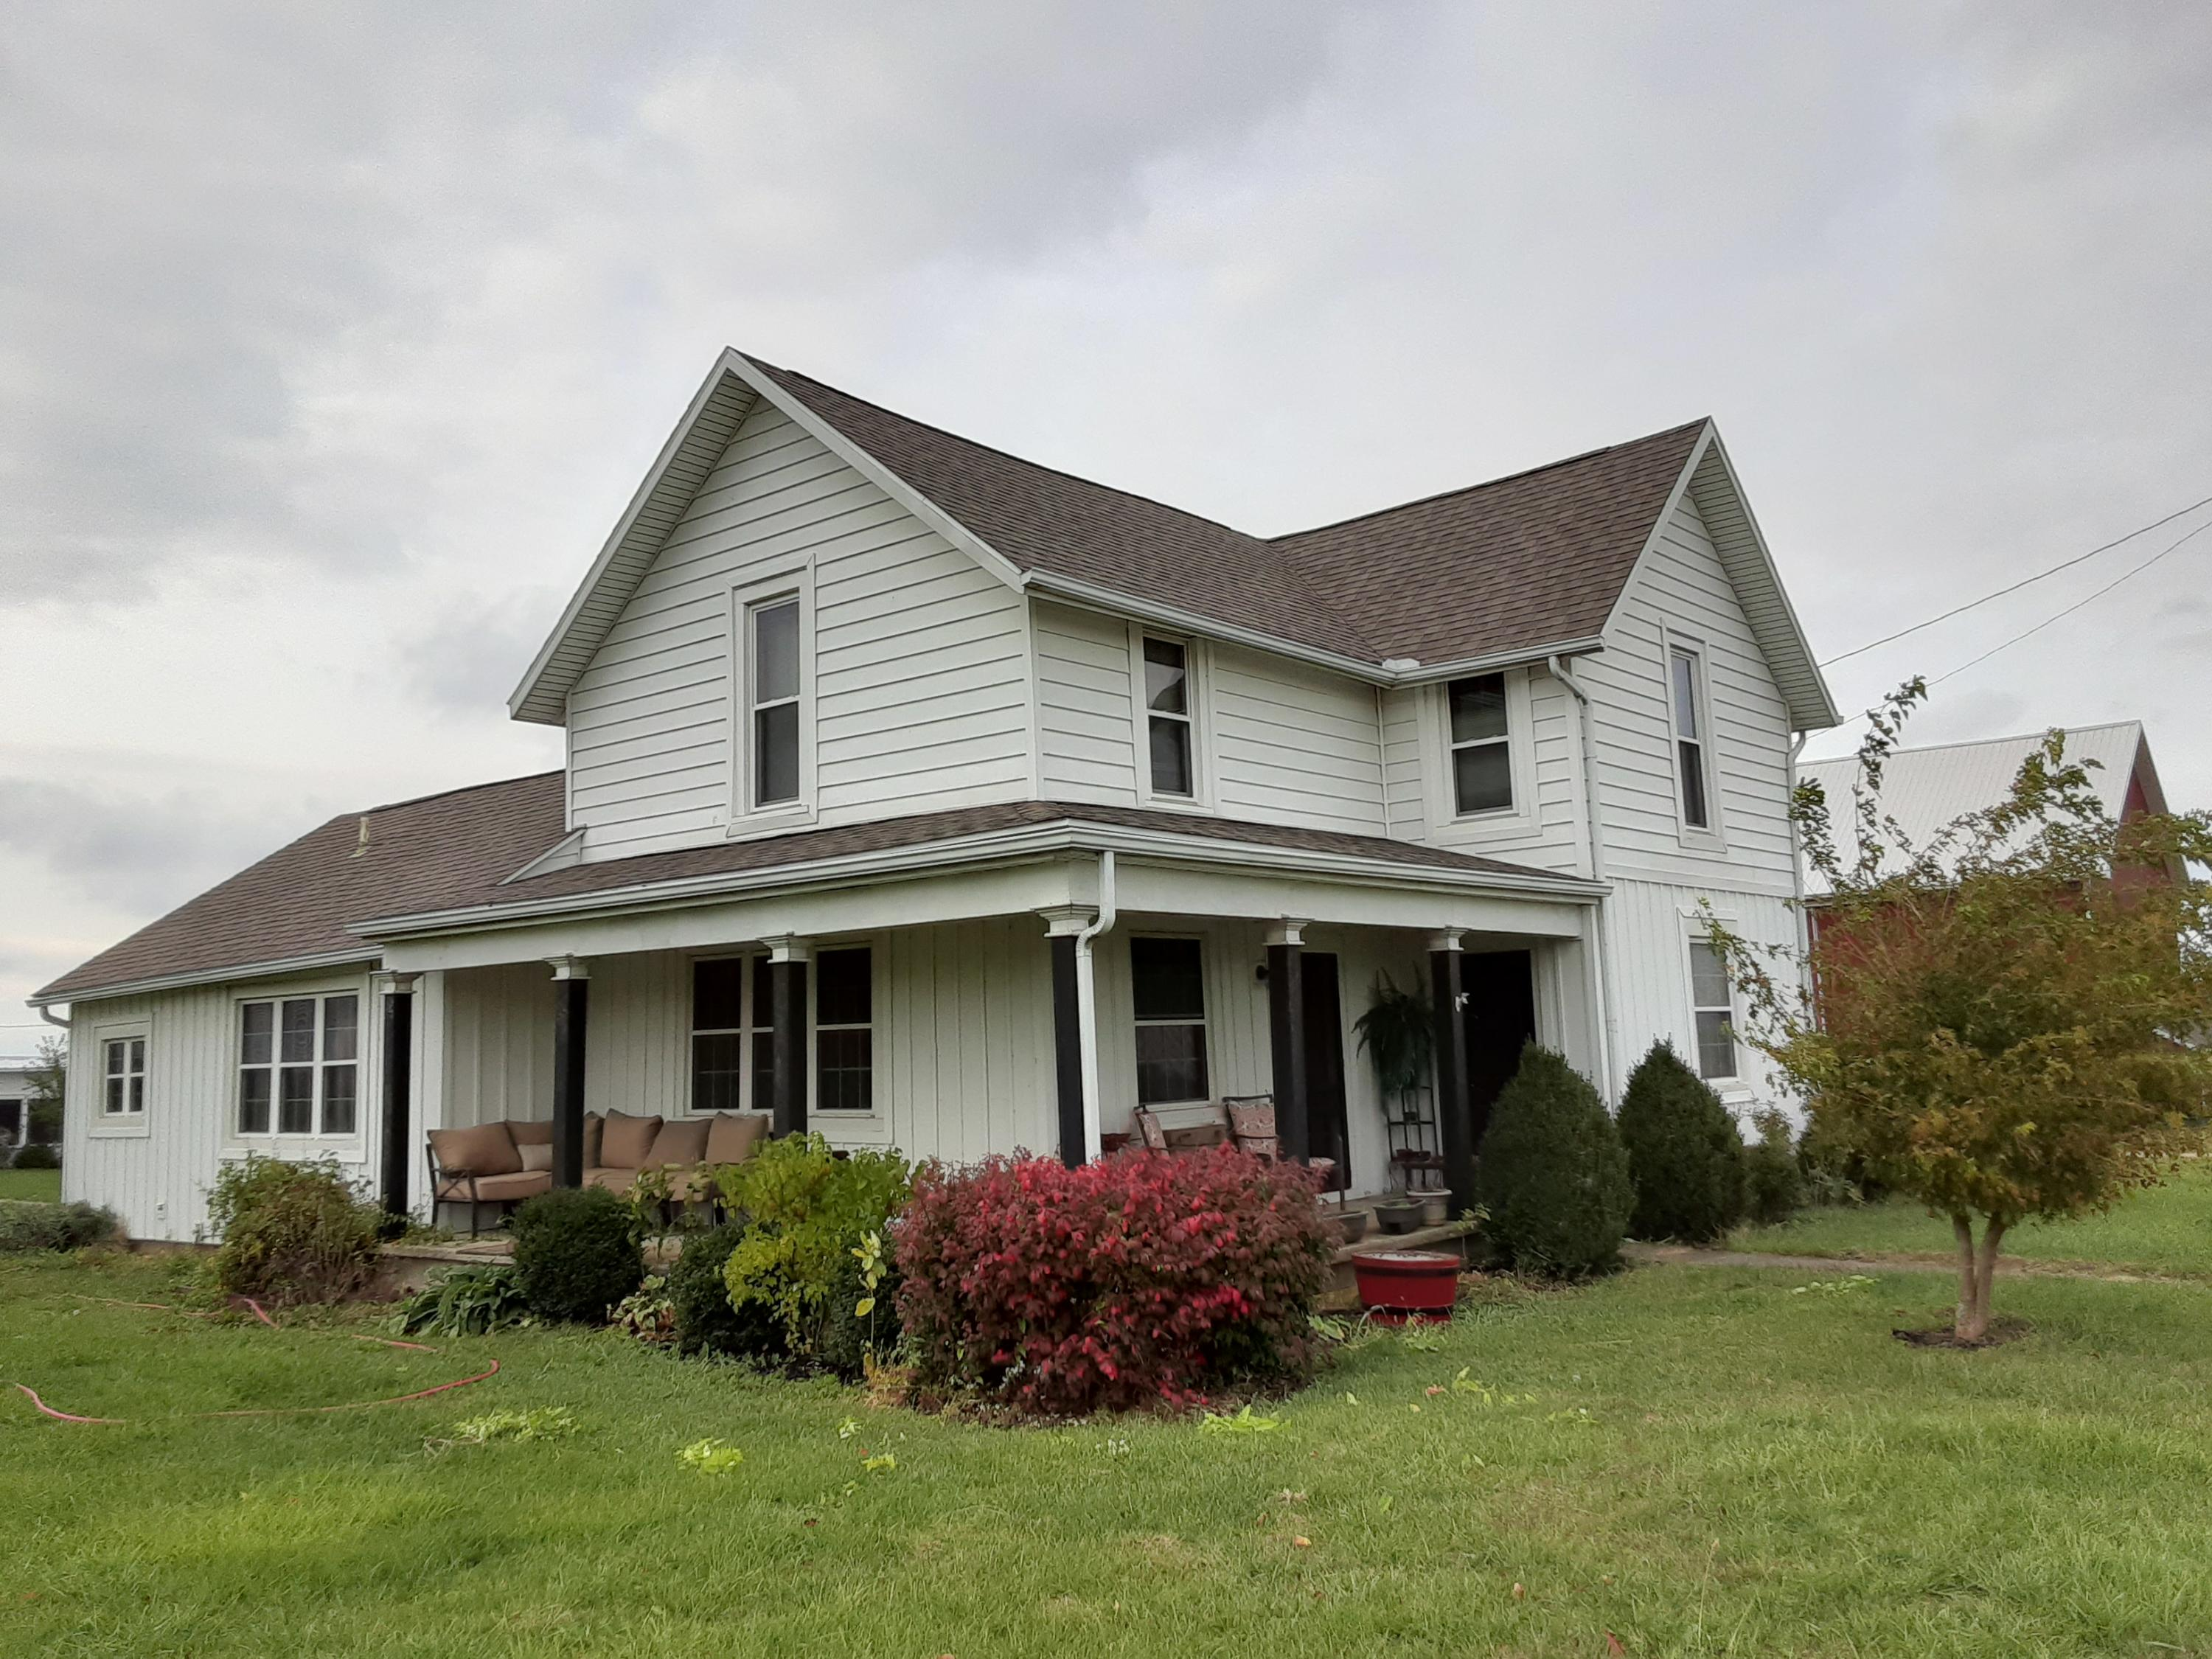 2578 N State Route 235 Property Photo - Saint Paris, OH real estate listing